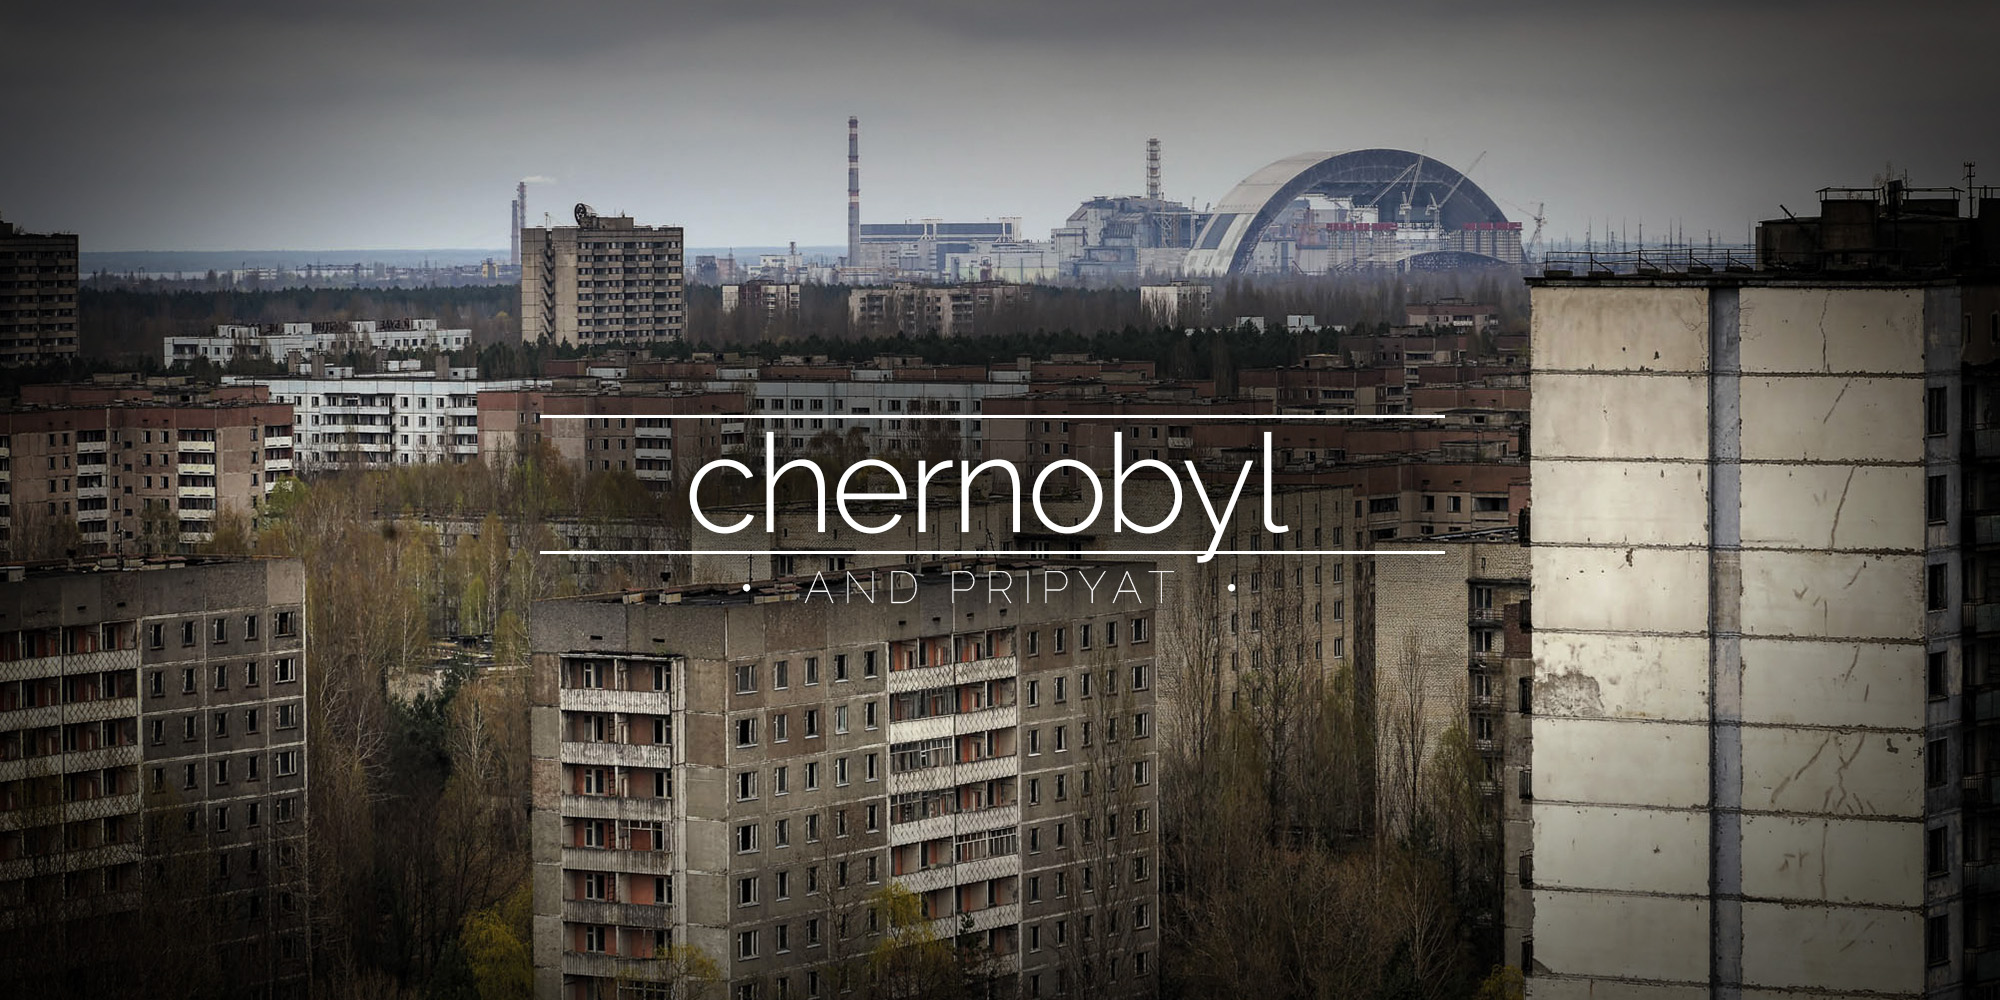 Chernobyl and Pripyat